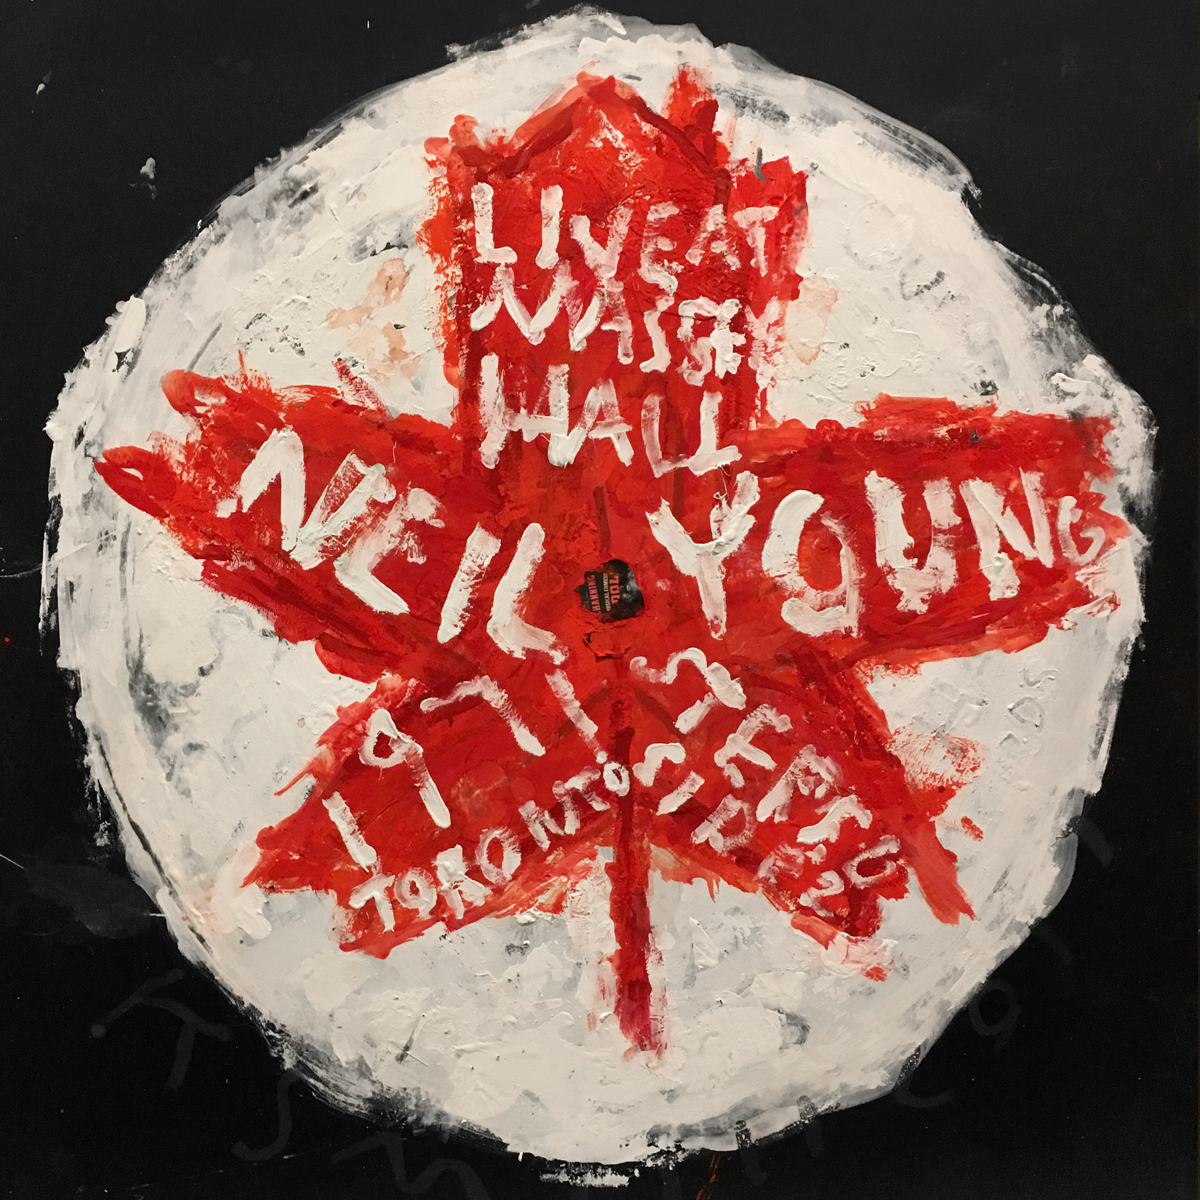 Neil Young / Live at Massey Hall #2